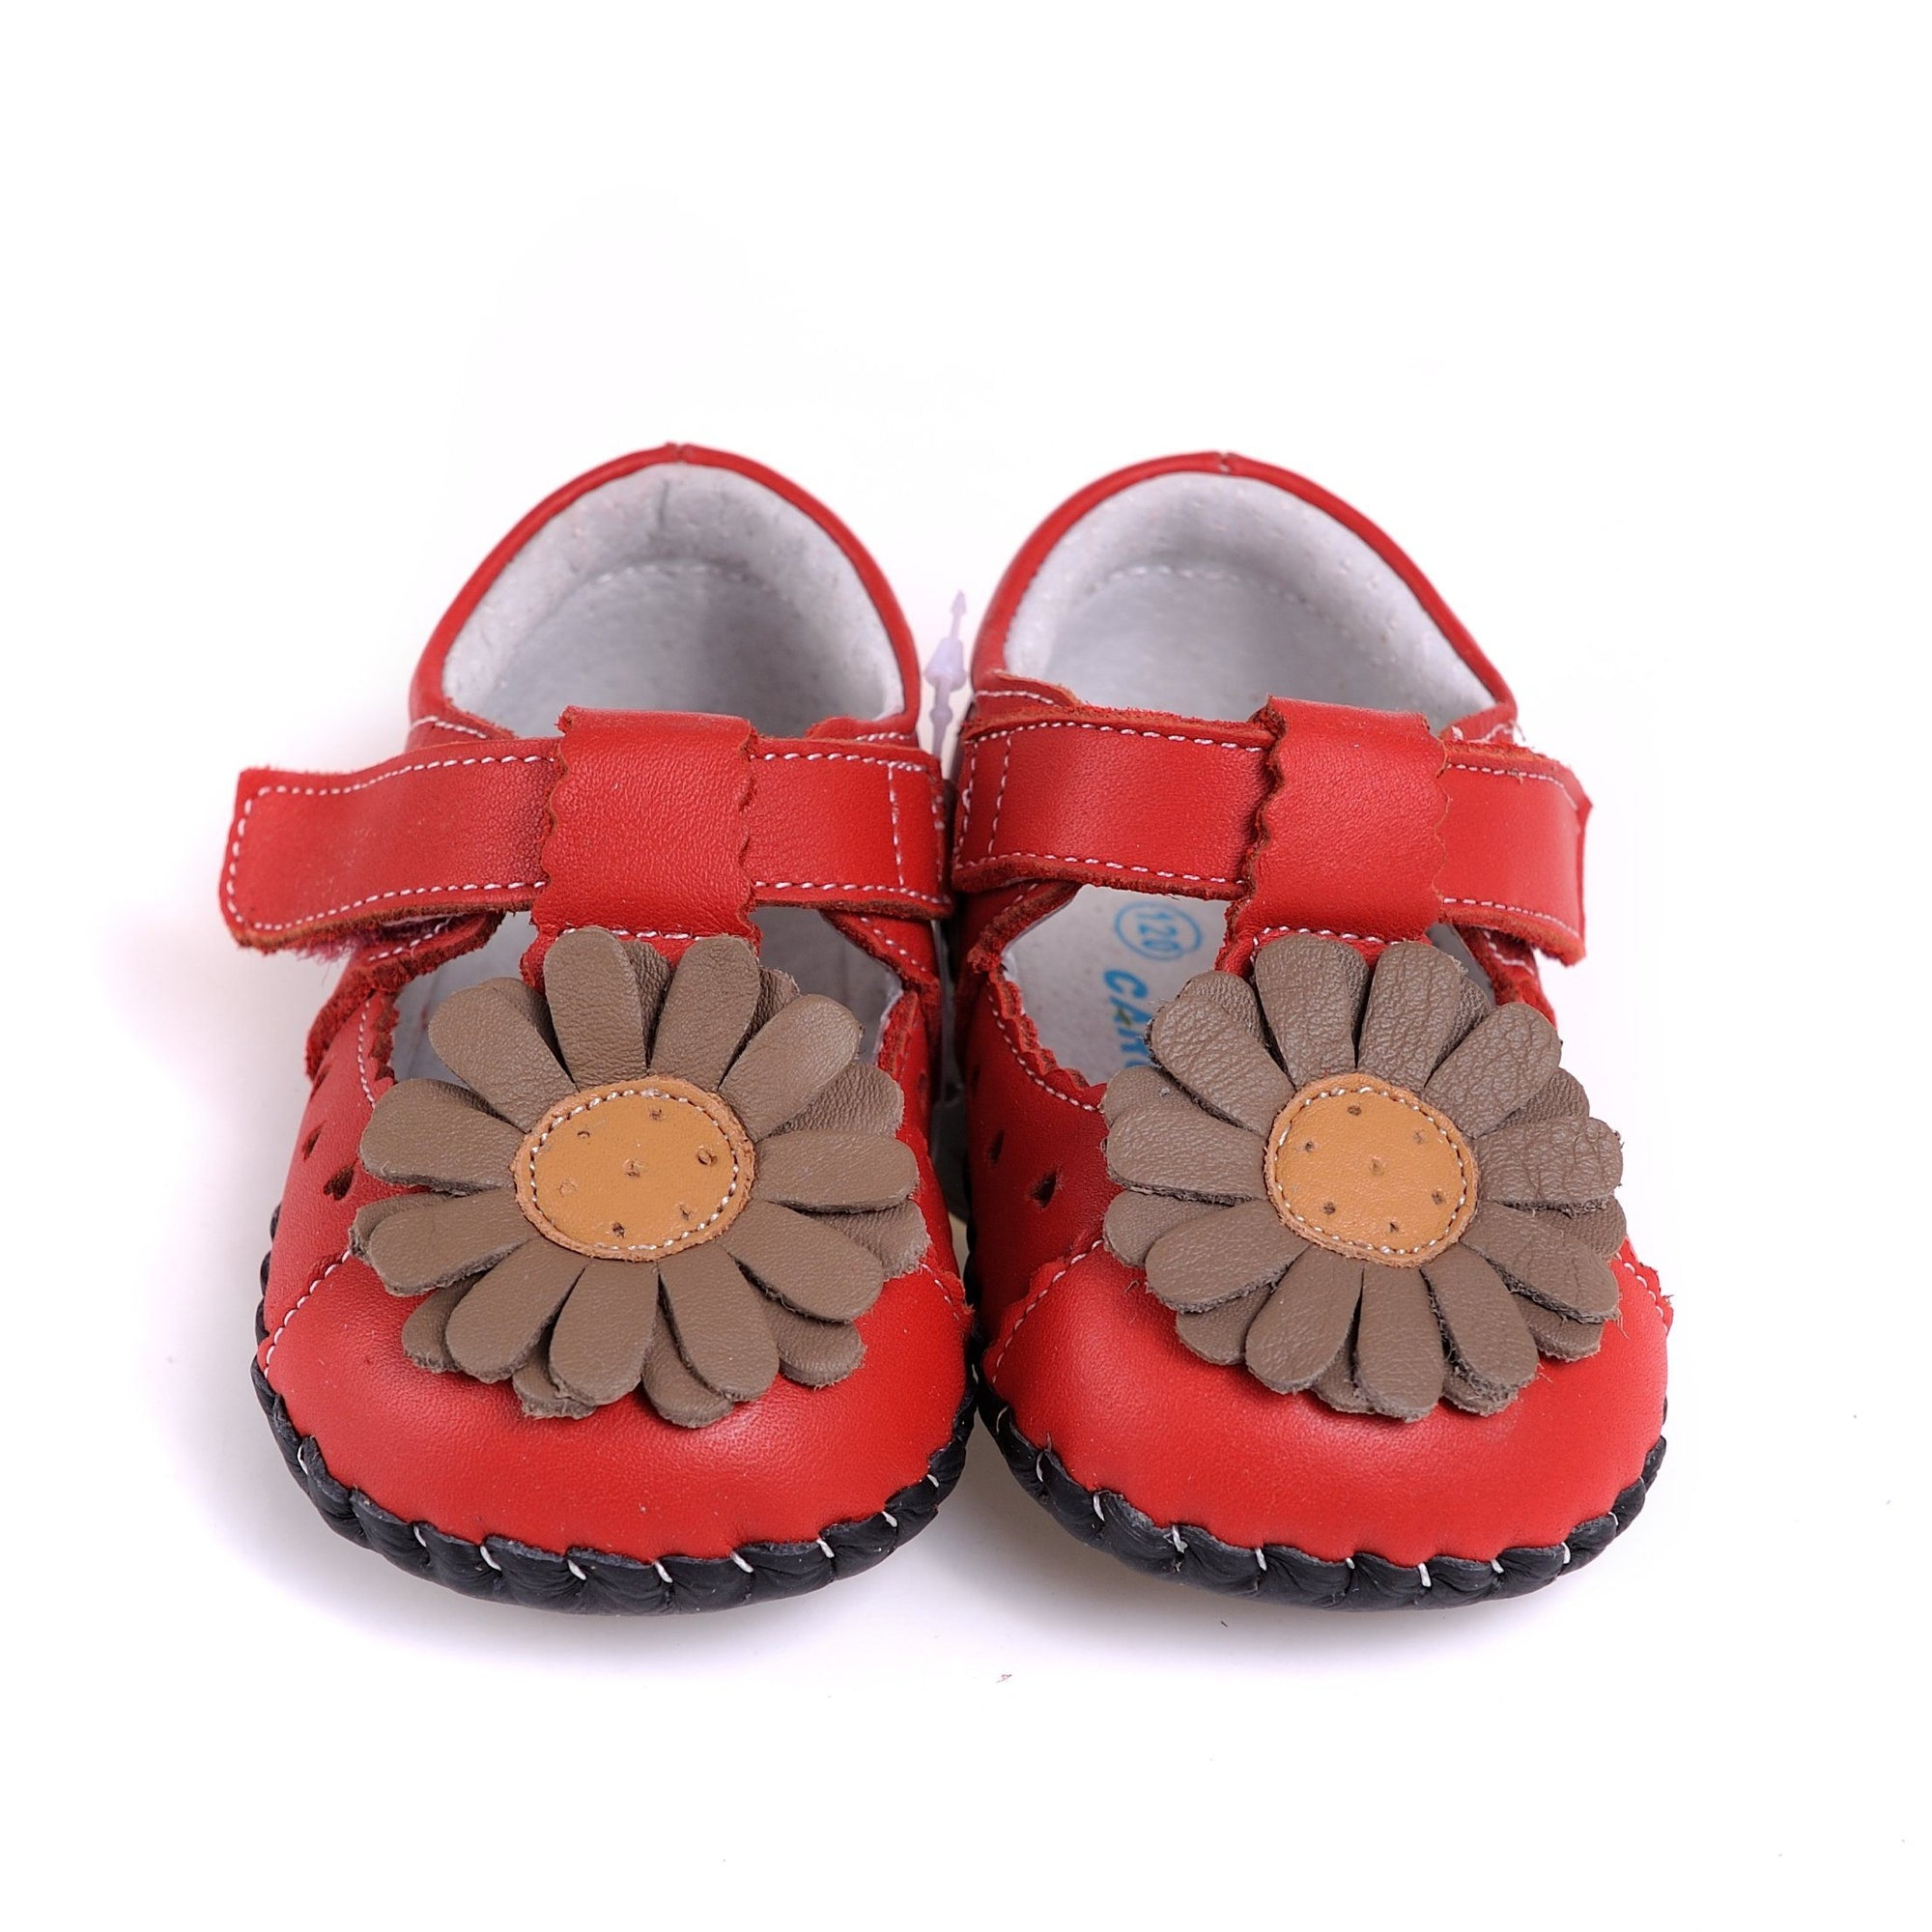 Big Daisy Mary Janes (Orange)